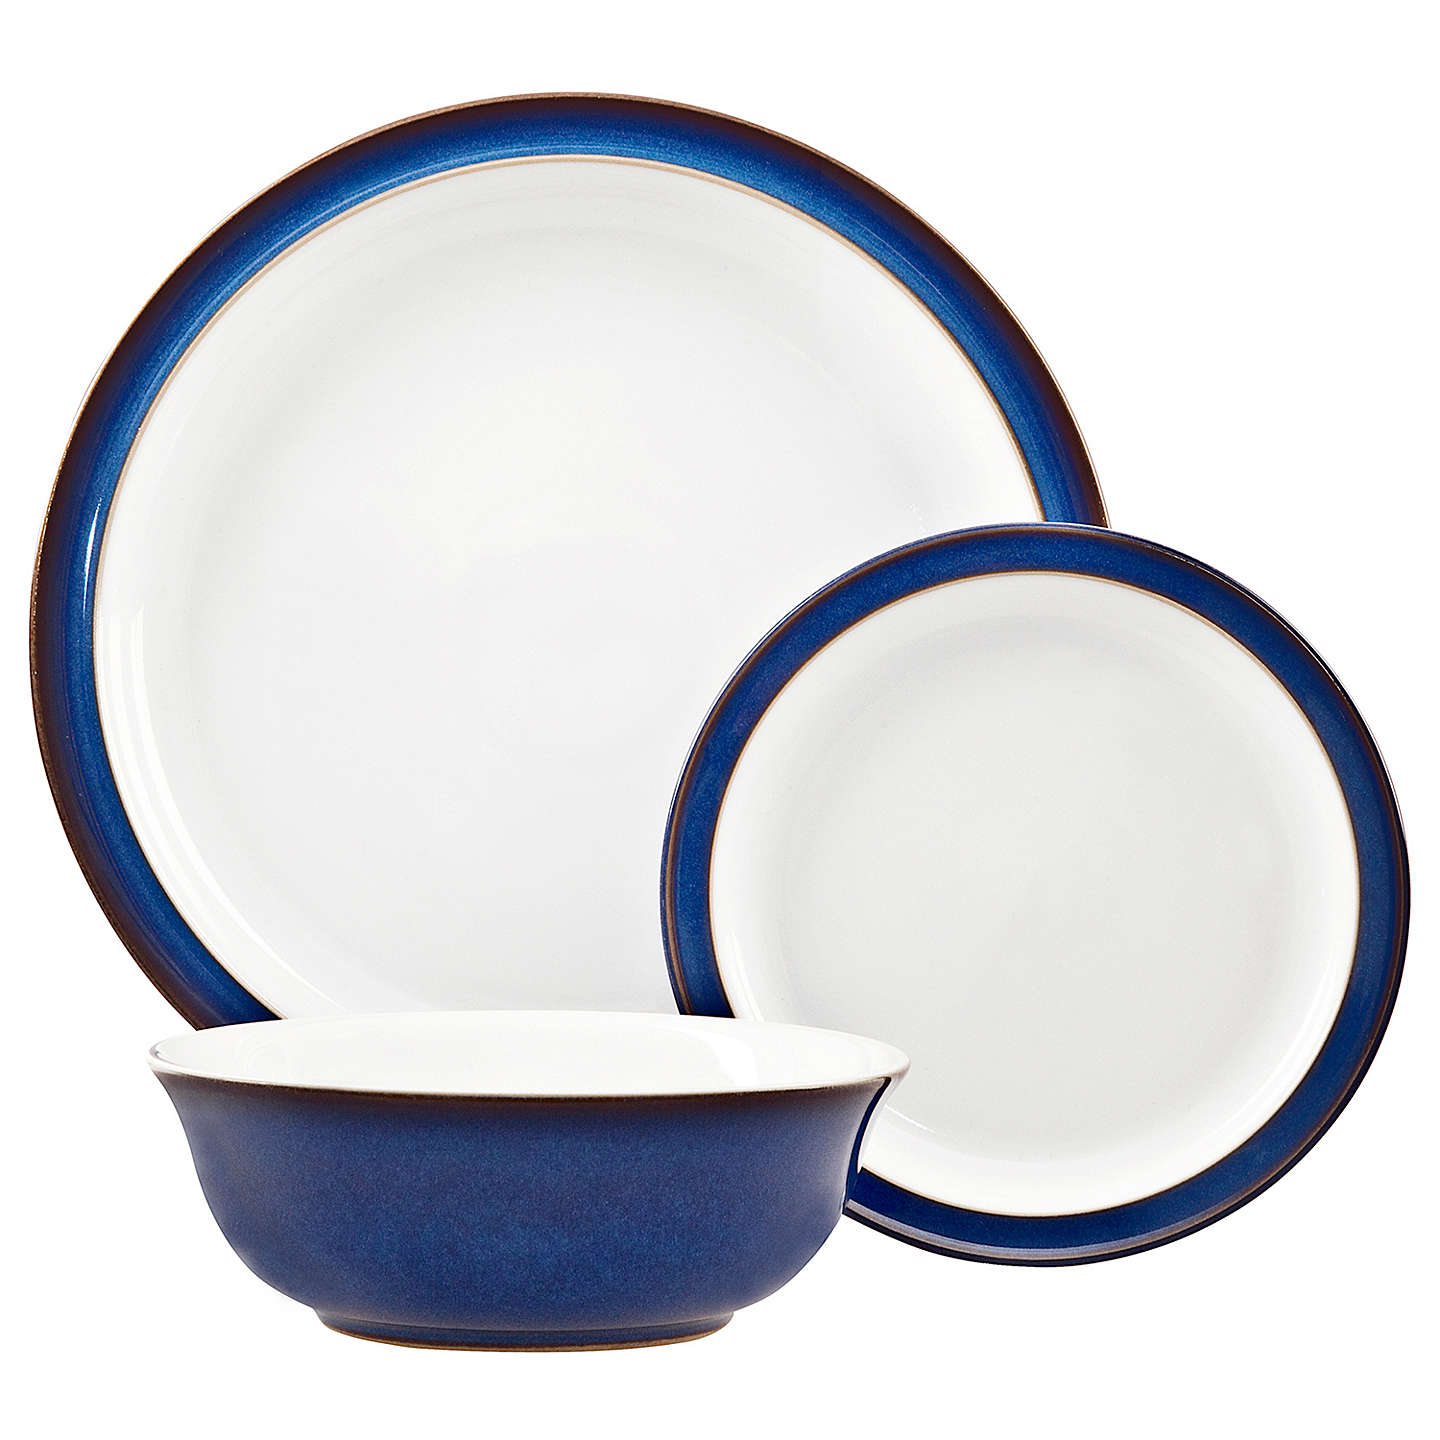 BuyDenby Imperial Blue Dinnerware Set 12 Piece Online at johnlewis.com ...  sc 1 st  John Lewis & Denby Imperial Blue Dinnerware Set 12 Piece at John Lewis